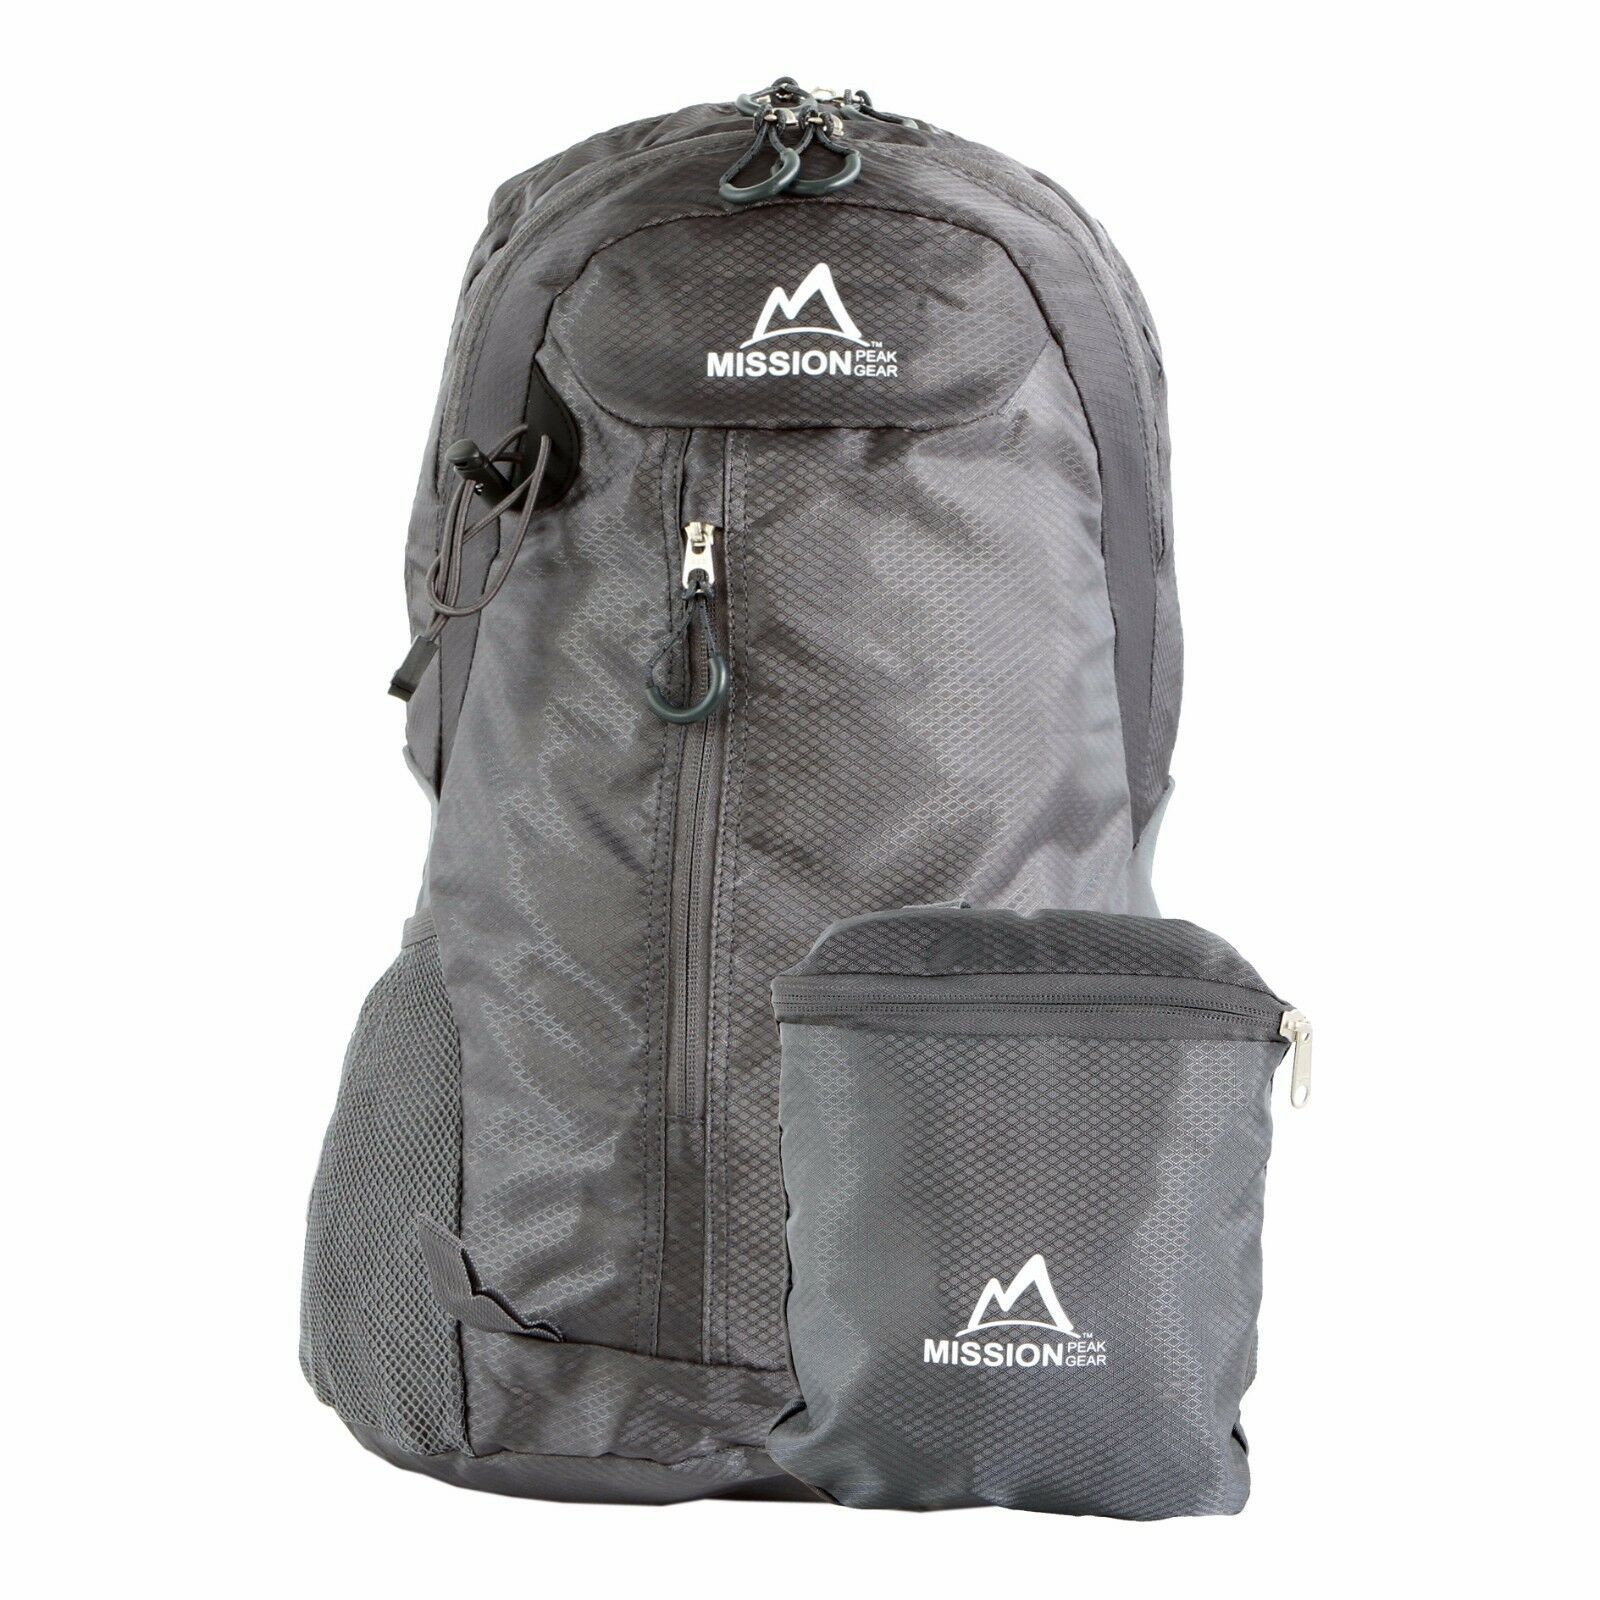 MISSION PEAK GEAR Fast2100 30L Foldable Packable Hiking Backpack Daypa...